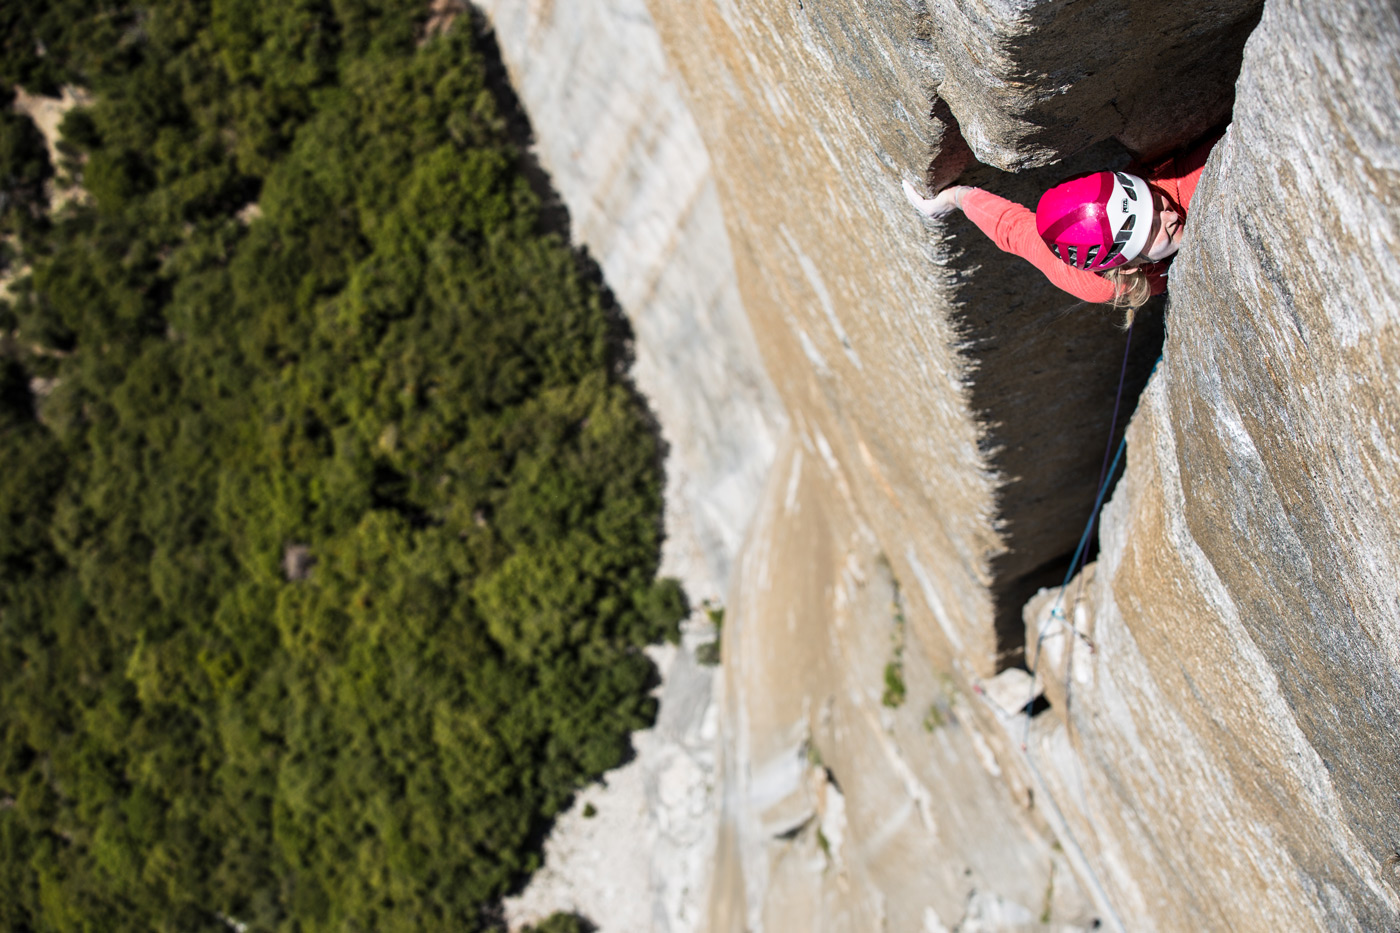 JHG_Yosemite_GG_Harrington_2015-68_web.jpg